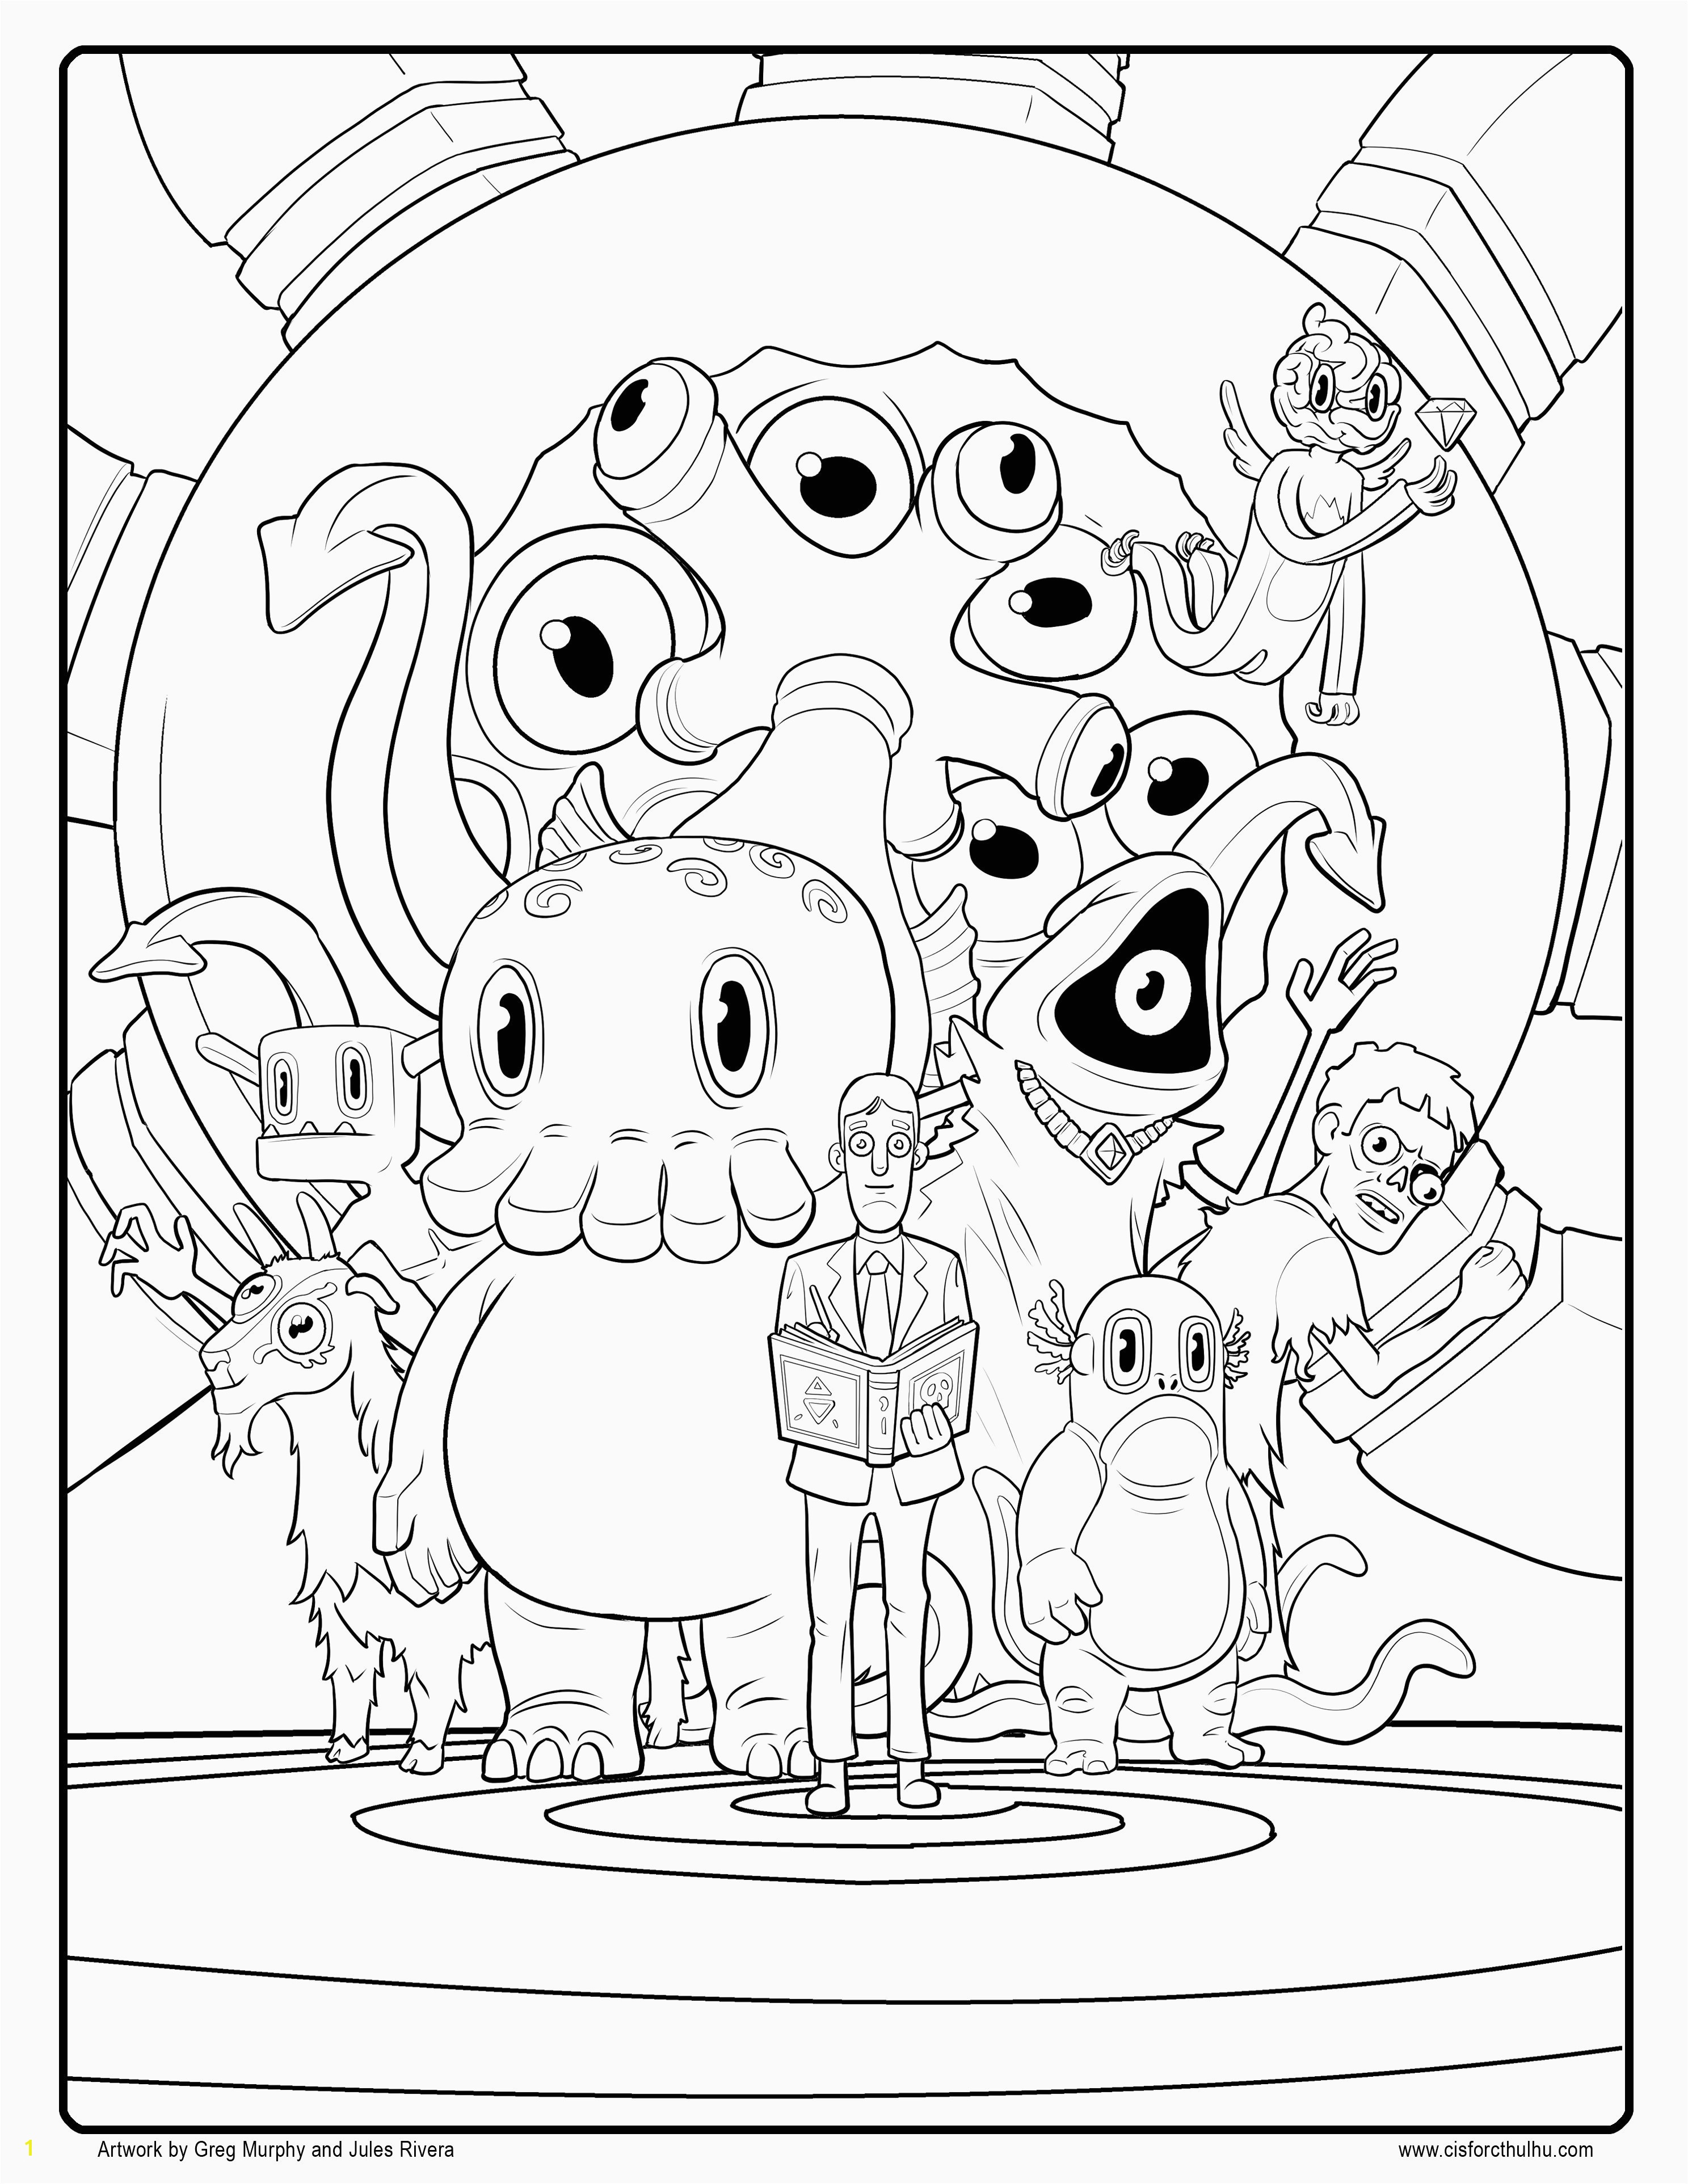 Gallery of link coloring pages